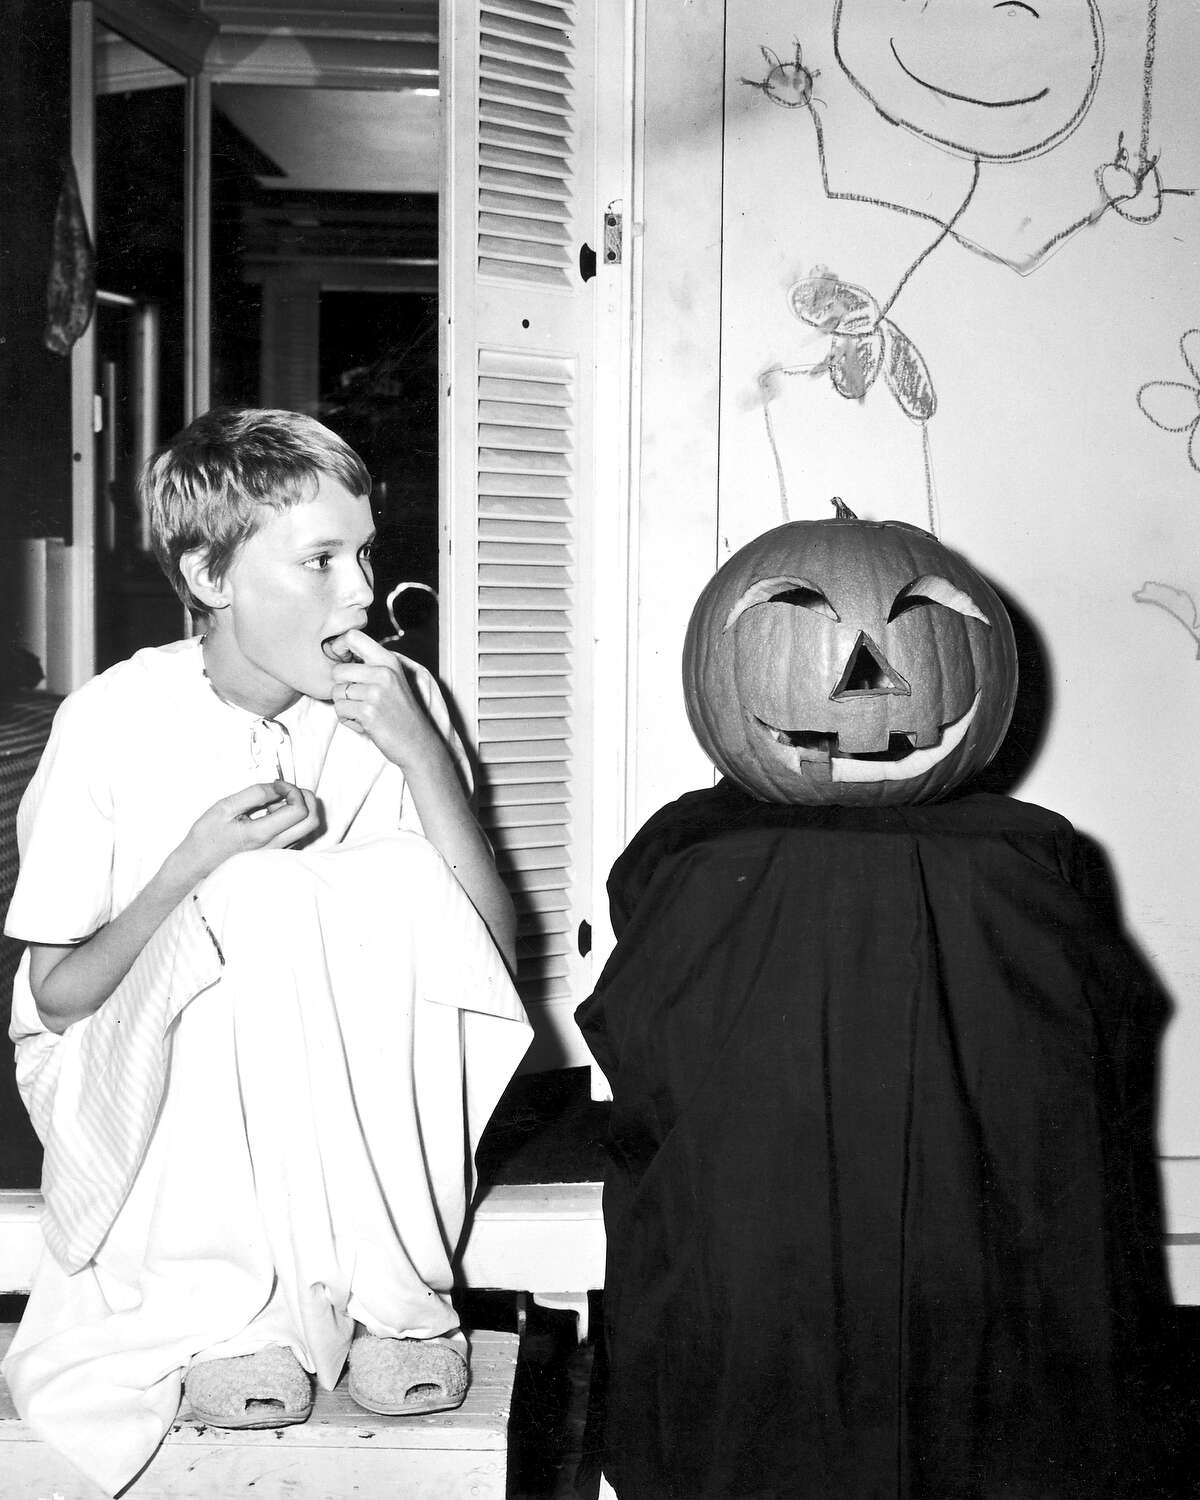 Halloween is big business in Hollywood, with hostesses like Heidi Klum going all out on extravagant costumes, eclipsing the Halloween of yesteryear, shown here with Mia Farrow in 1970. Take a look at some of Hollywood wildest Halloween parties: